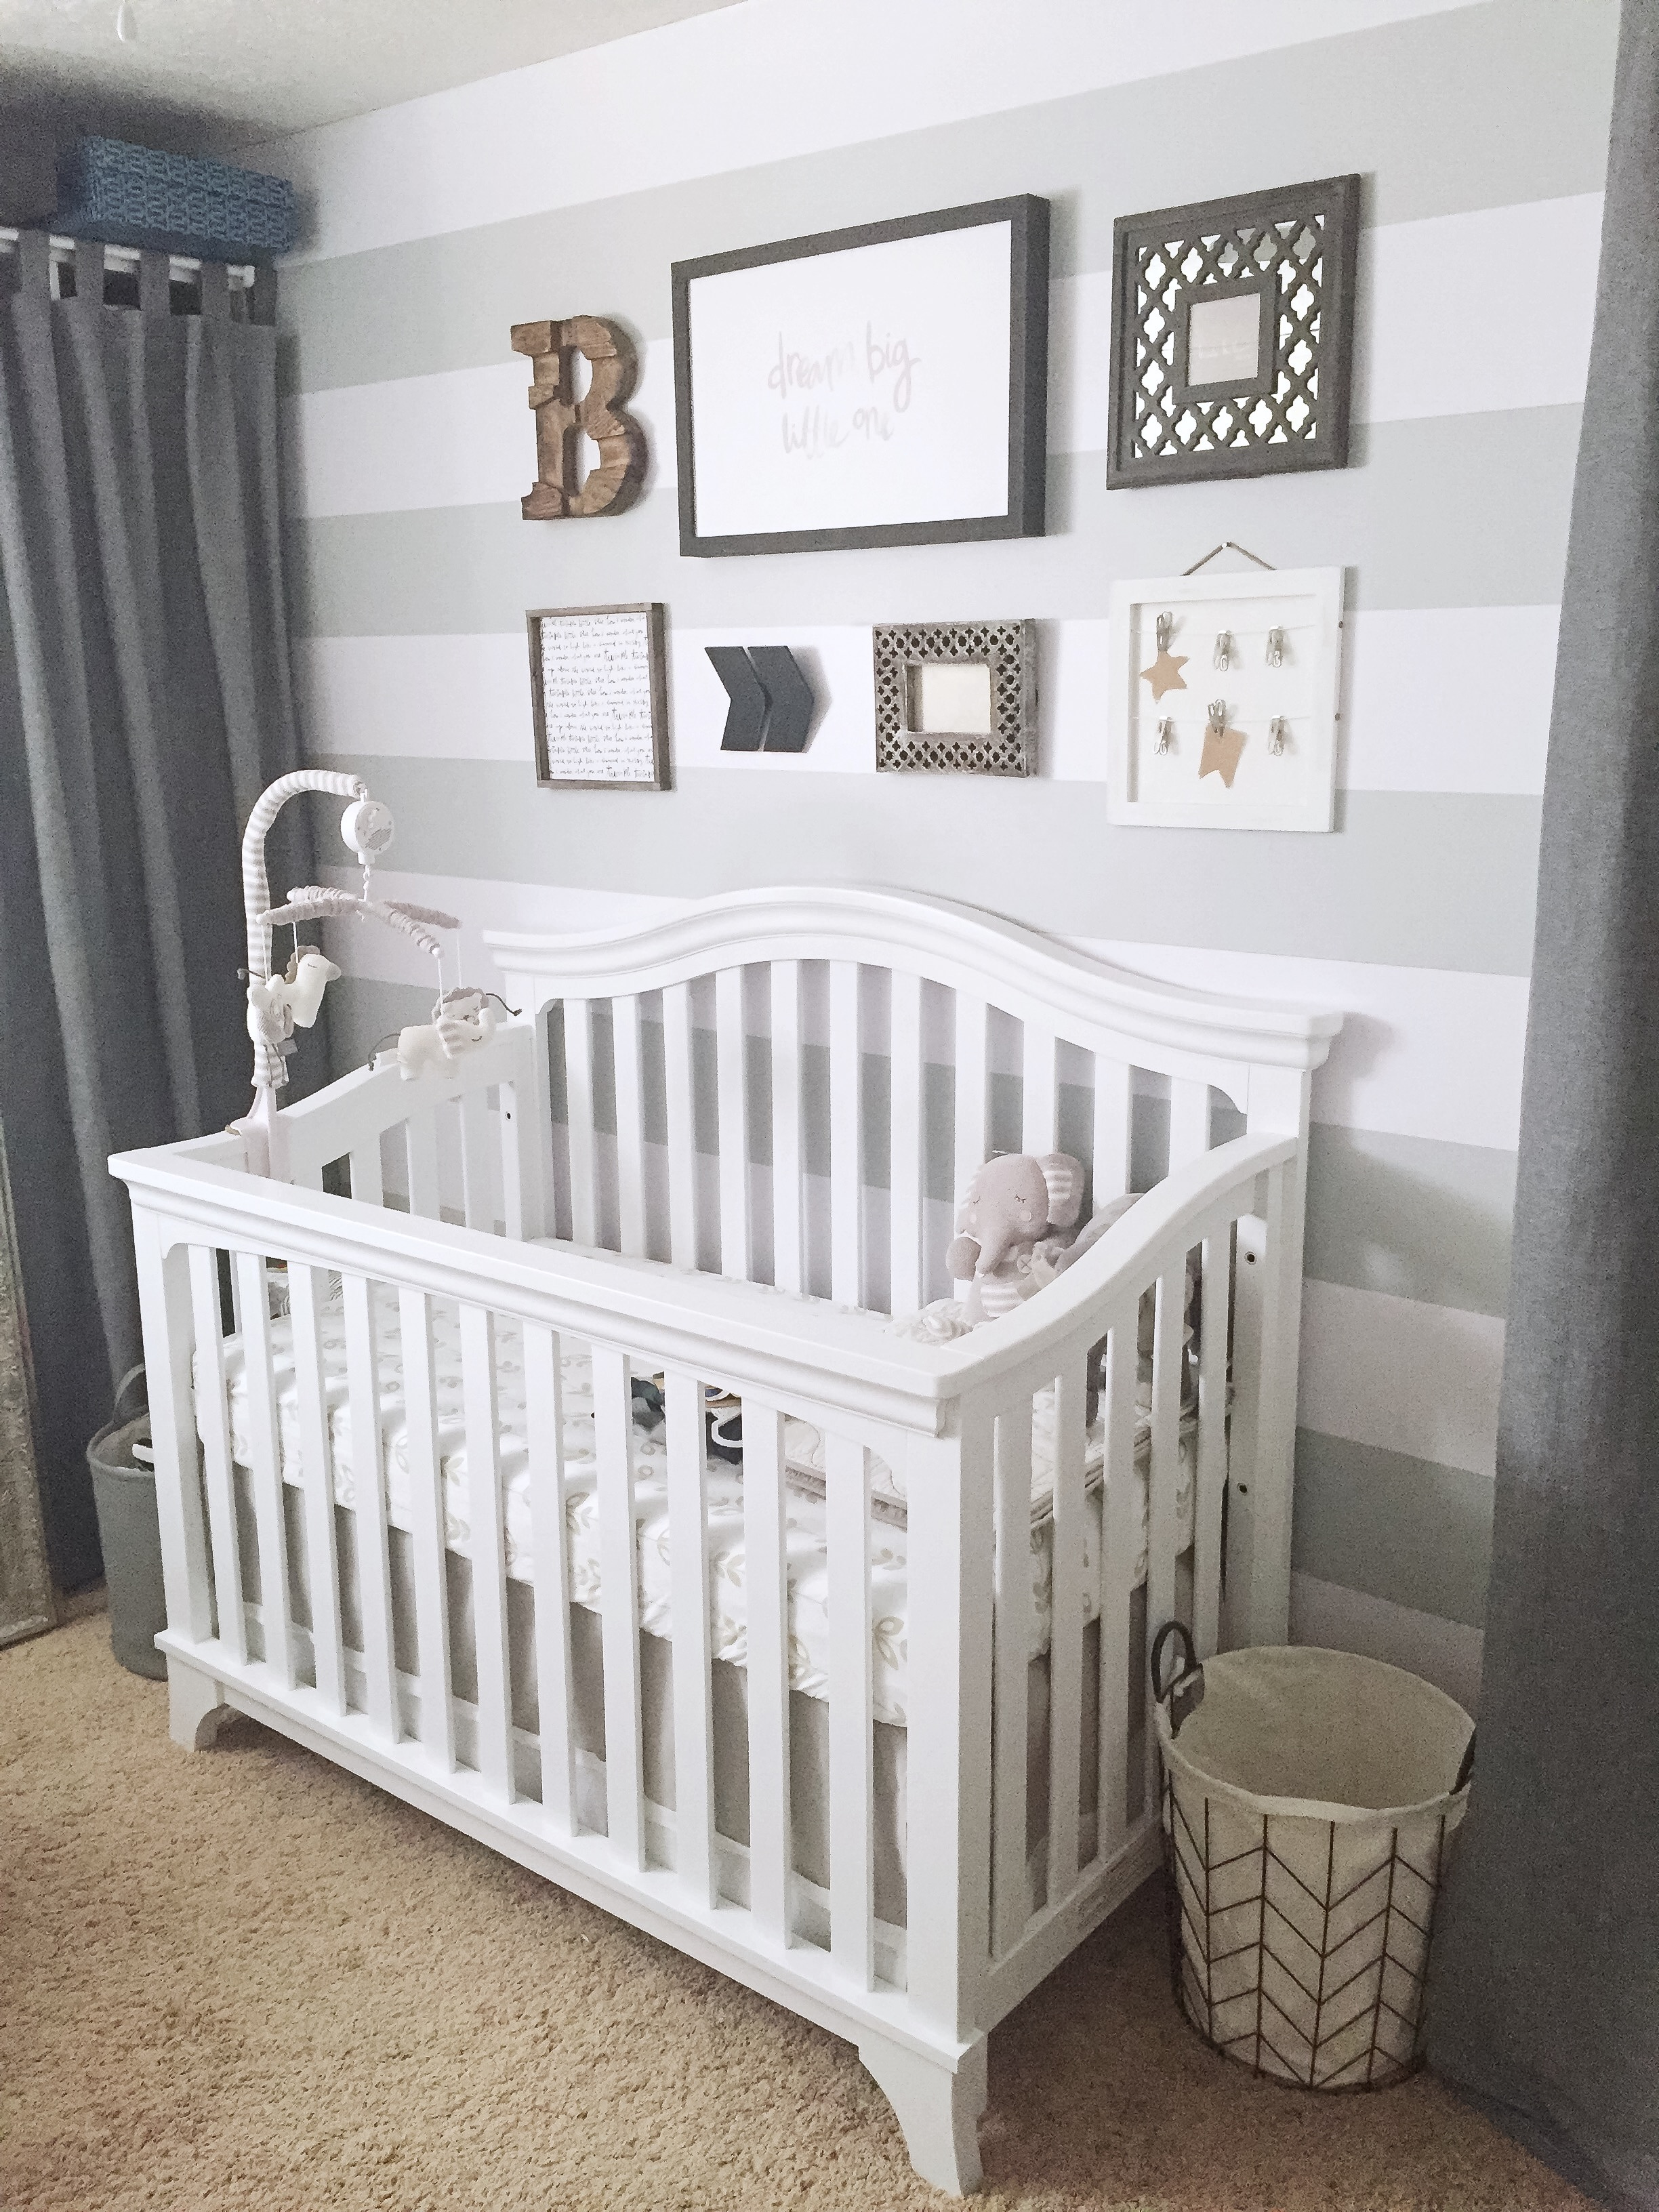 How to Transform a Small Room Into the Perfect Baby Nursery  Little Miss Fearless  Bloglovin